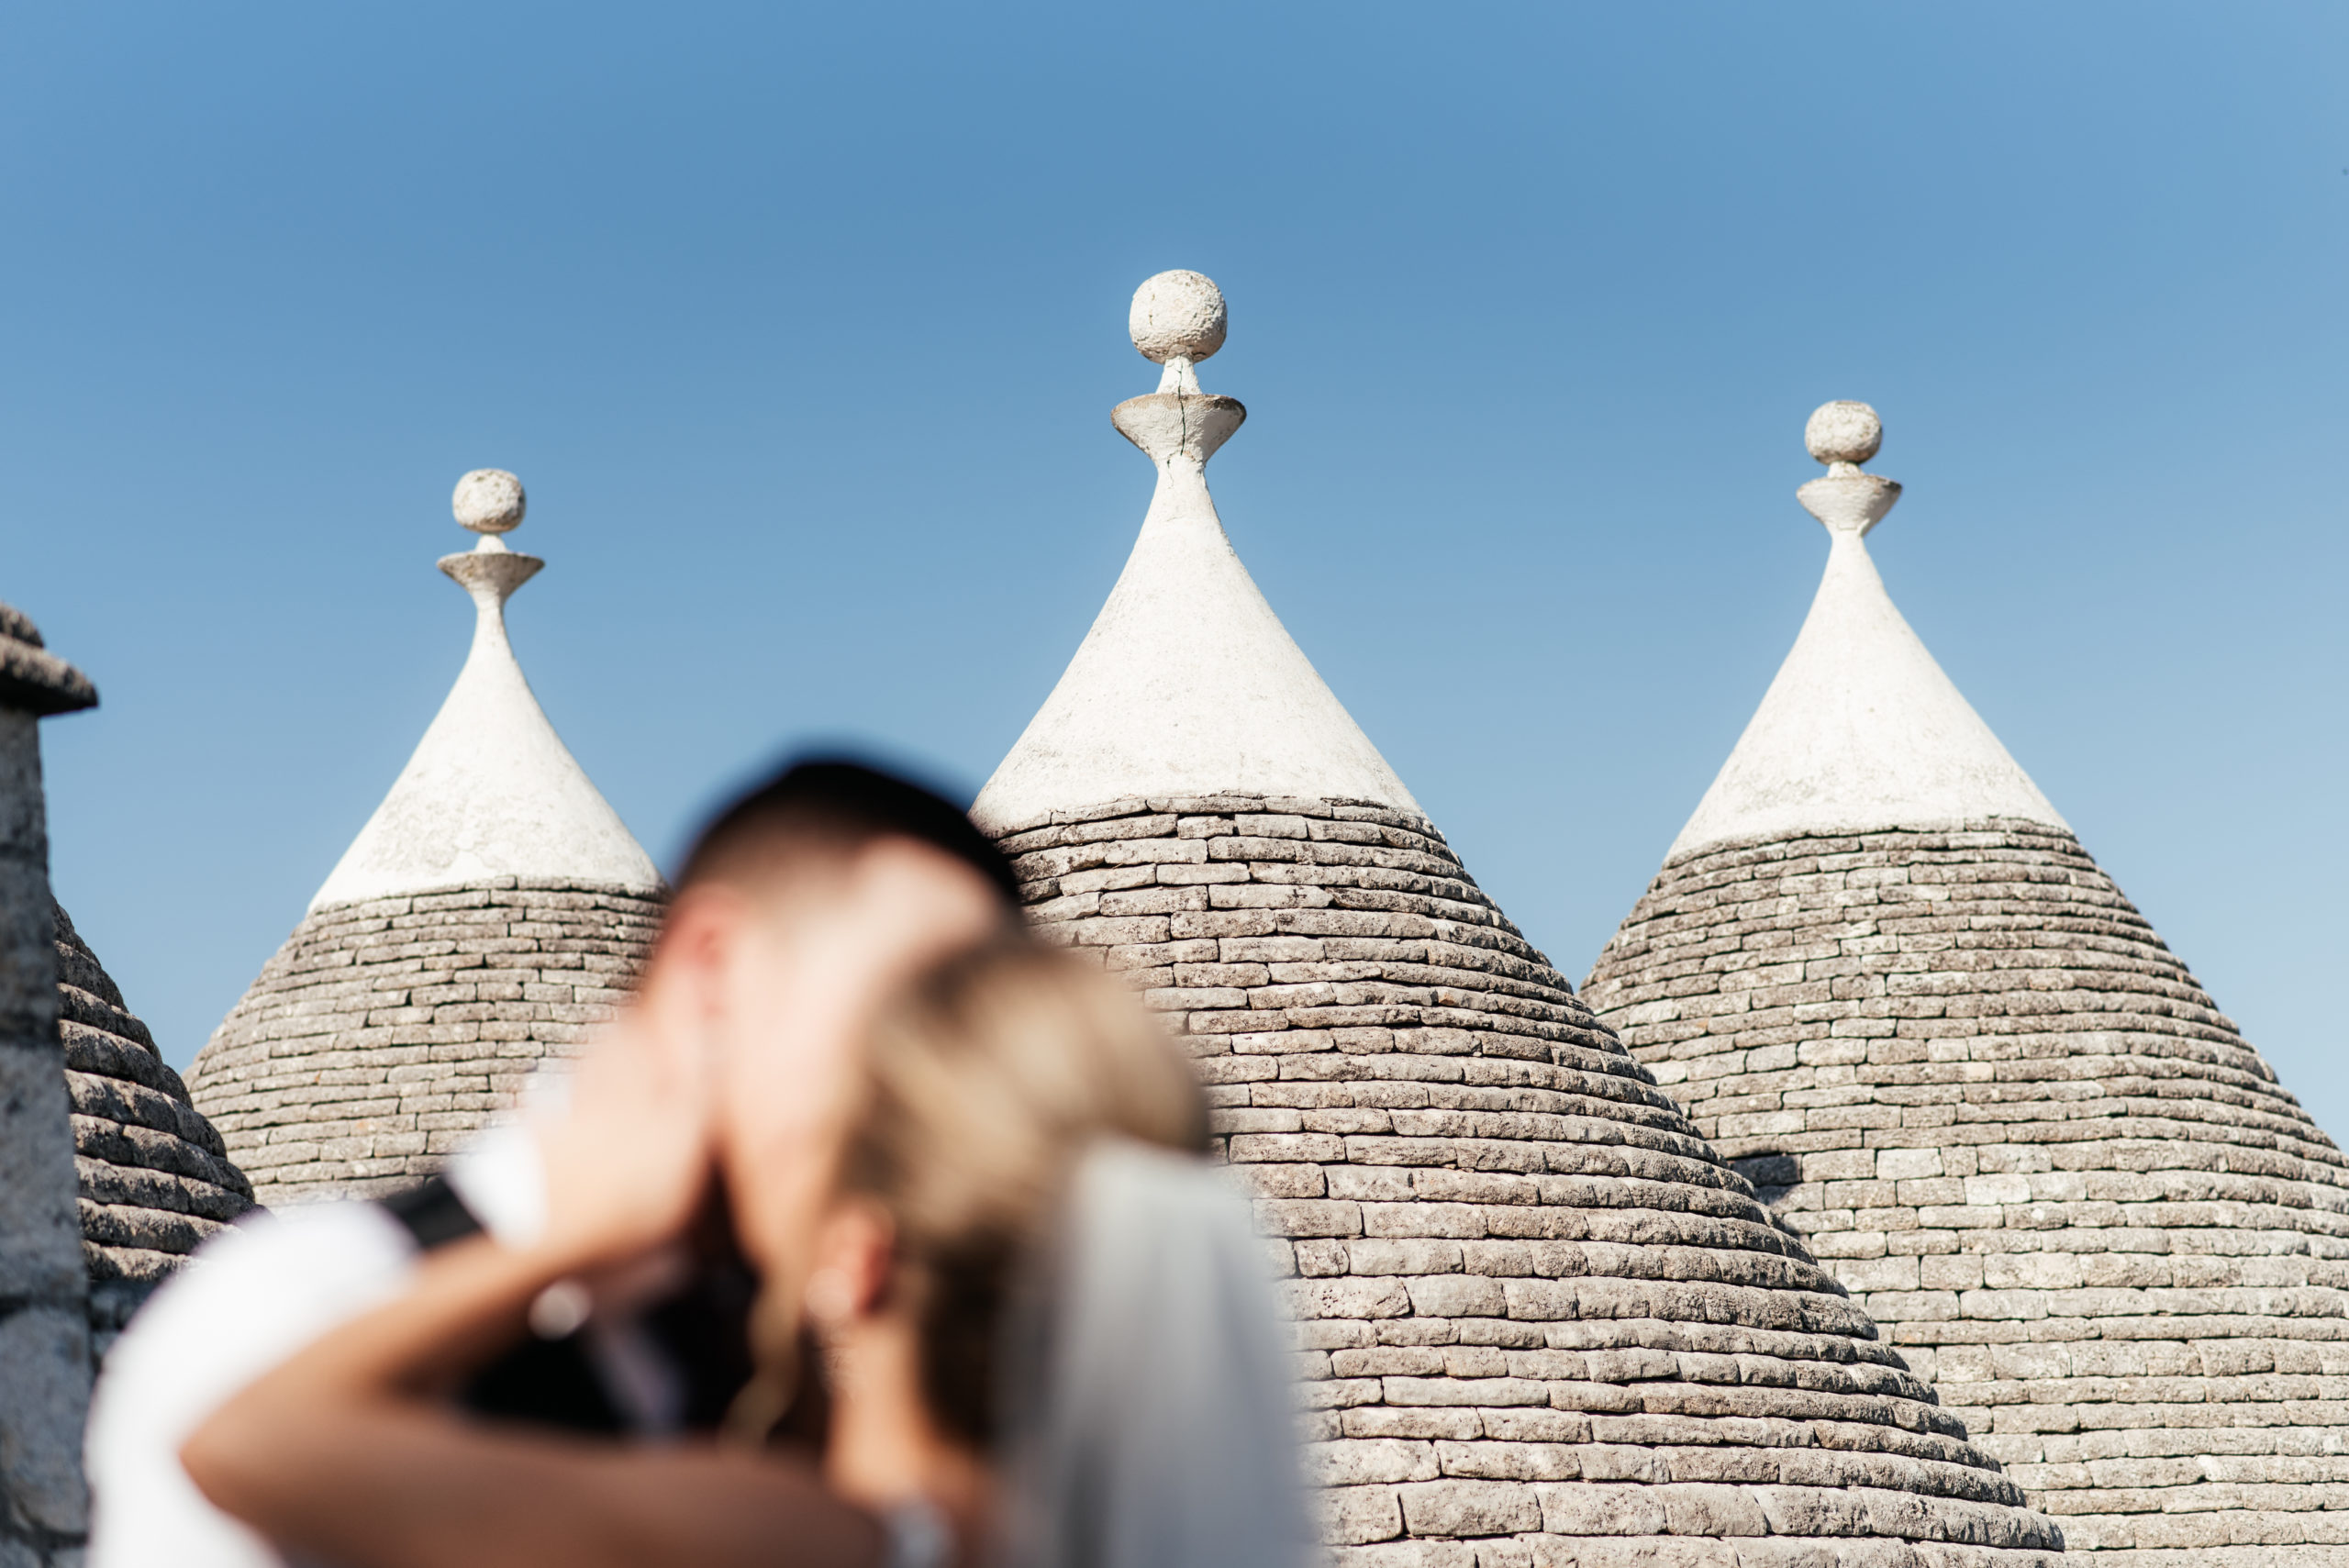 Amanda and Marcus among trulli in Apulia